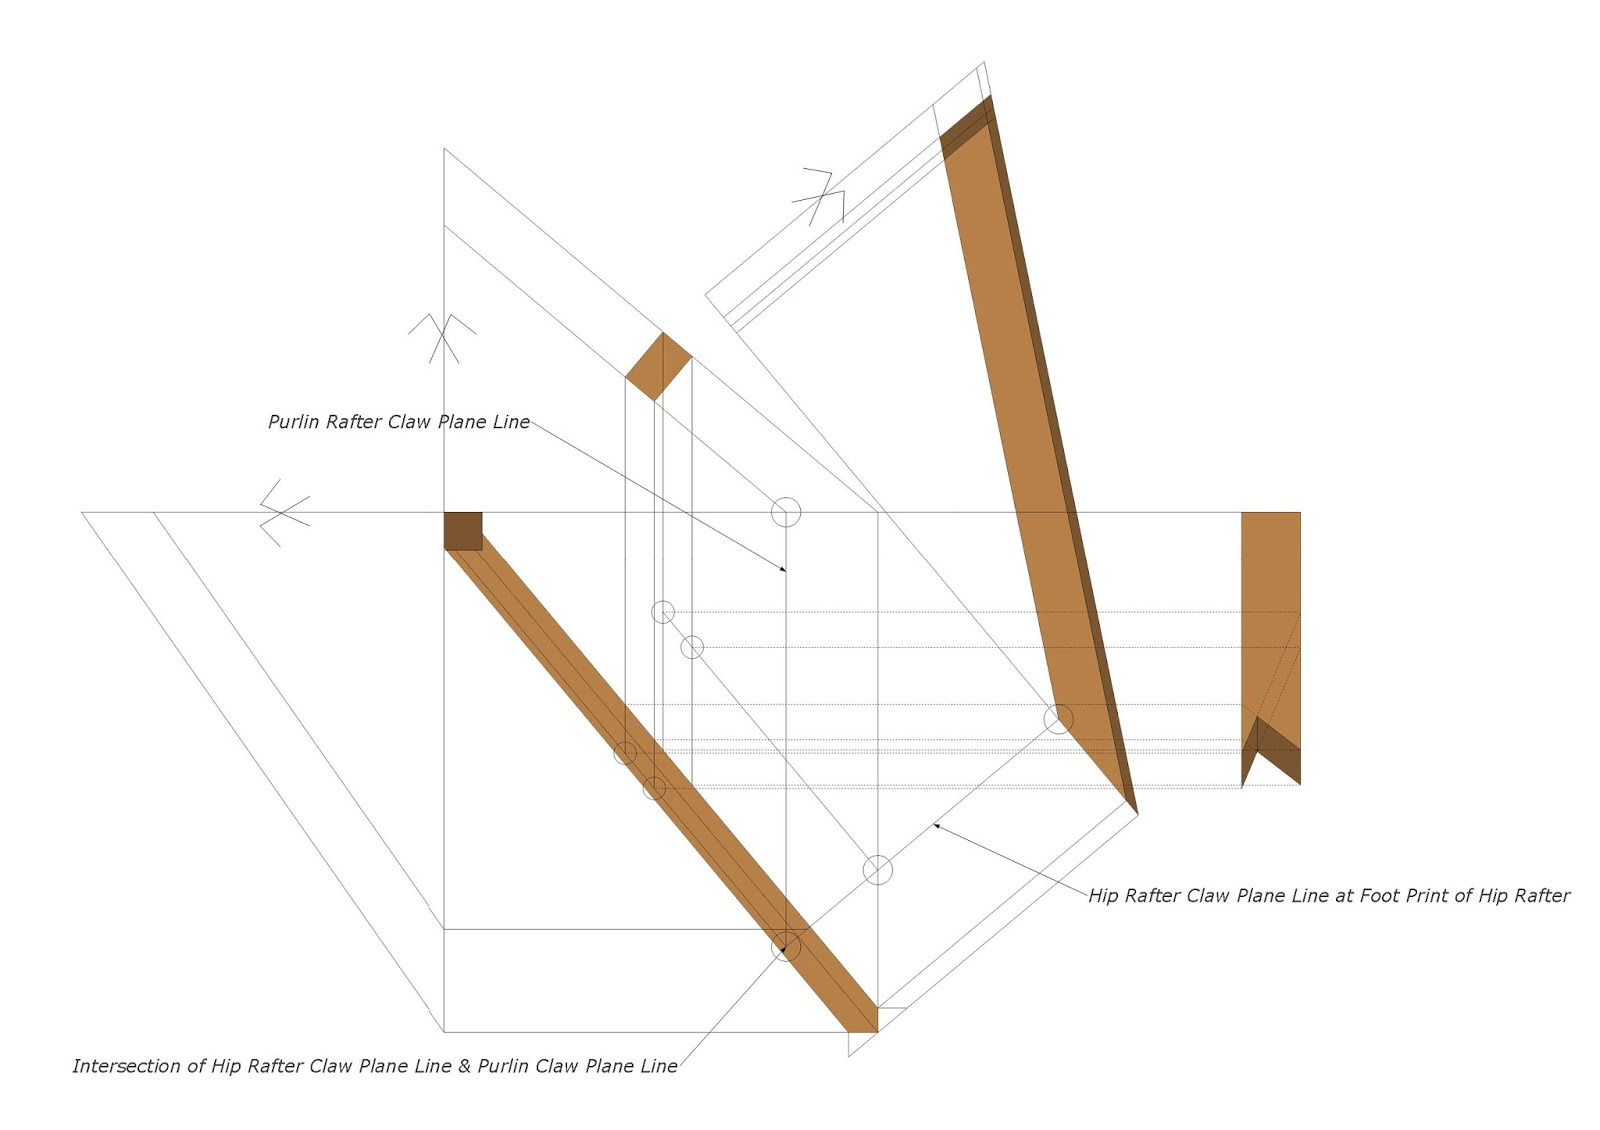 hight resolution of another example of developing the claw angle on the purlin rafter